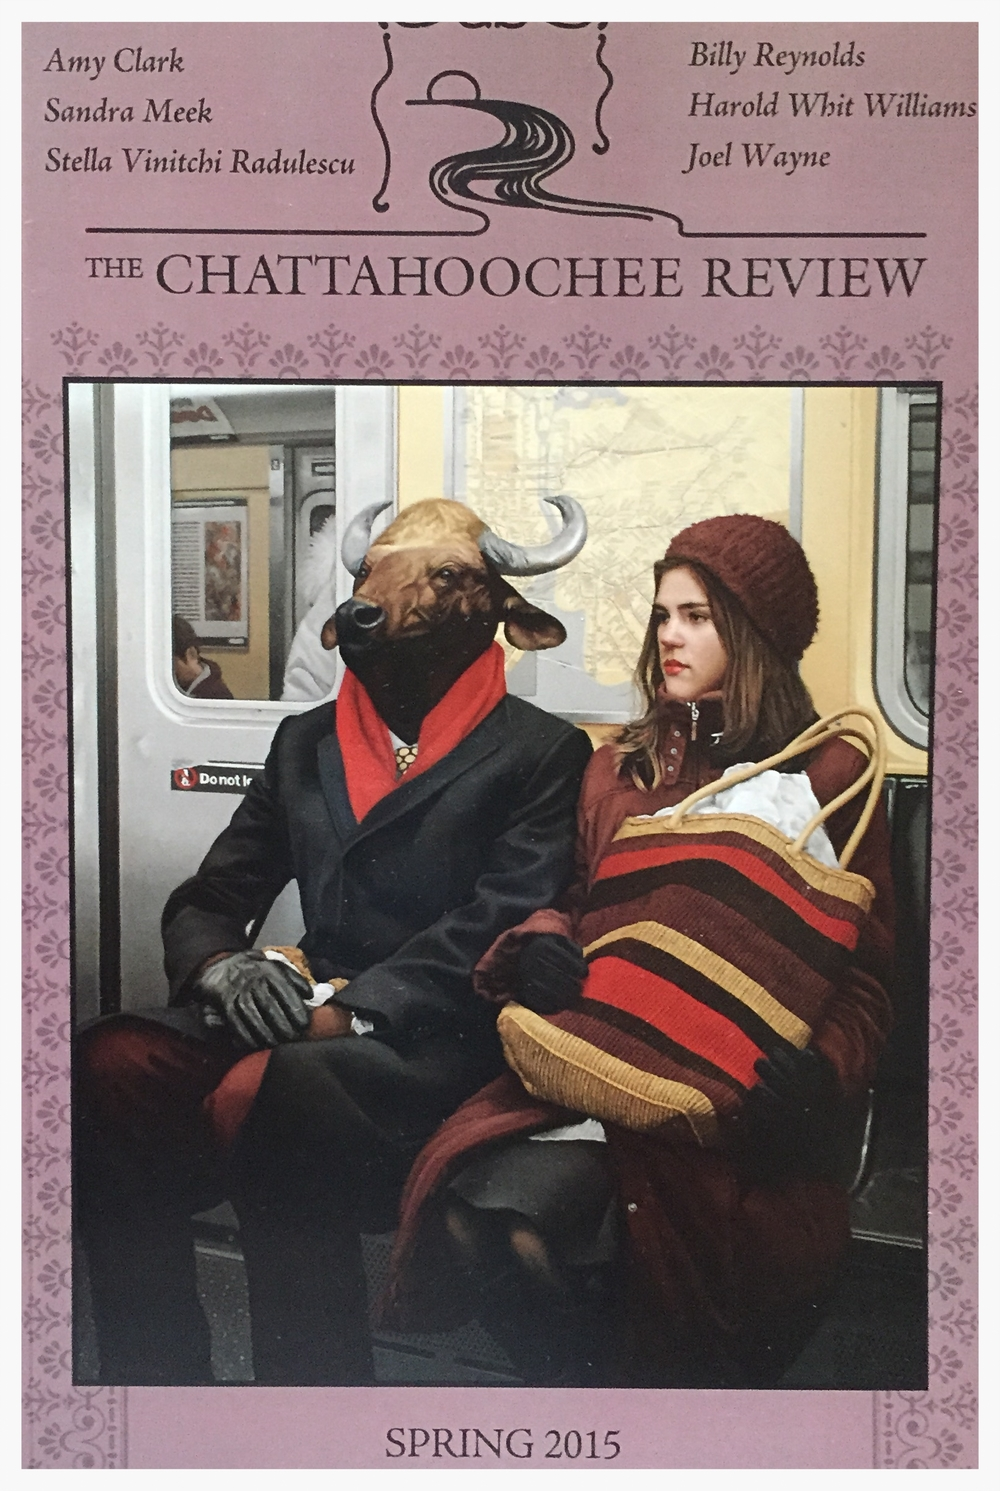 The latest issue of  The Chattahoochee Review .